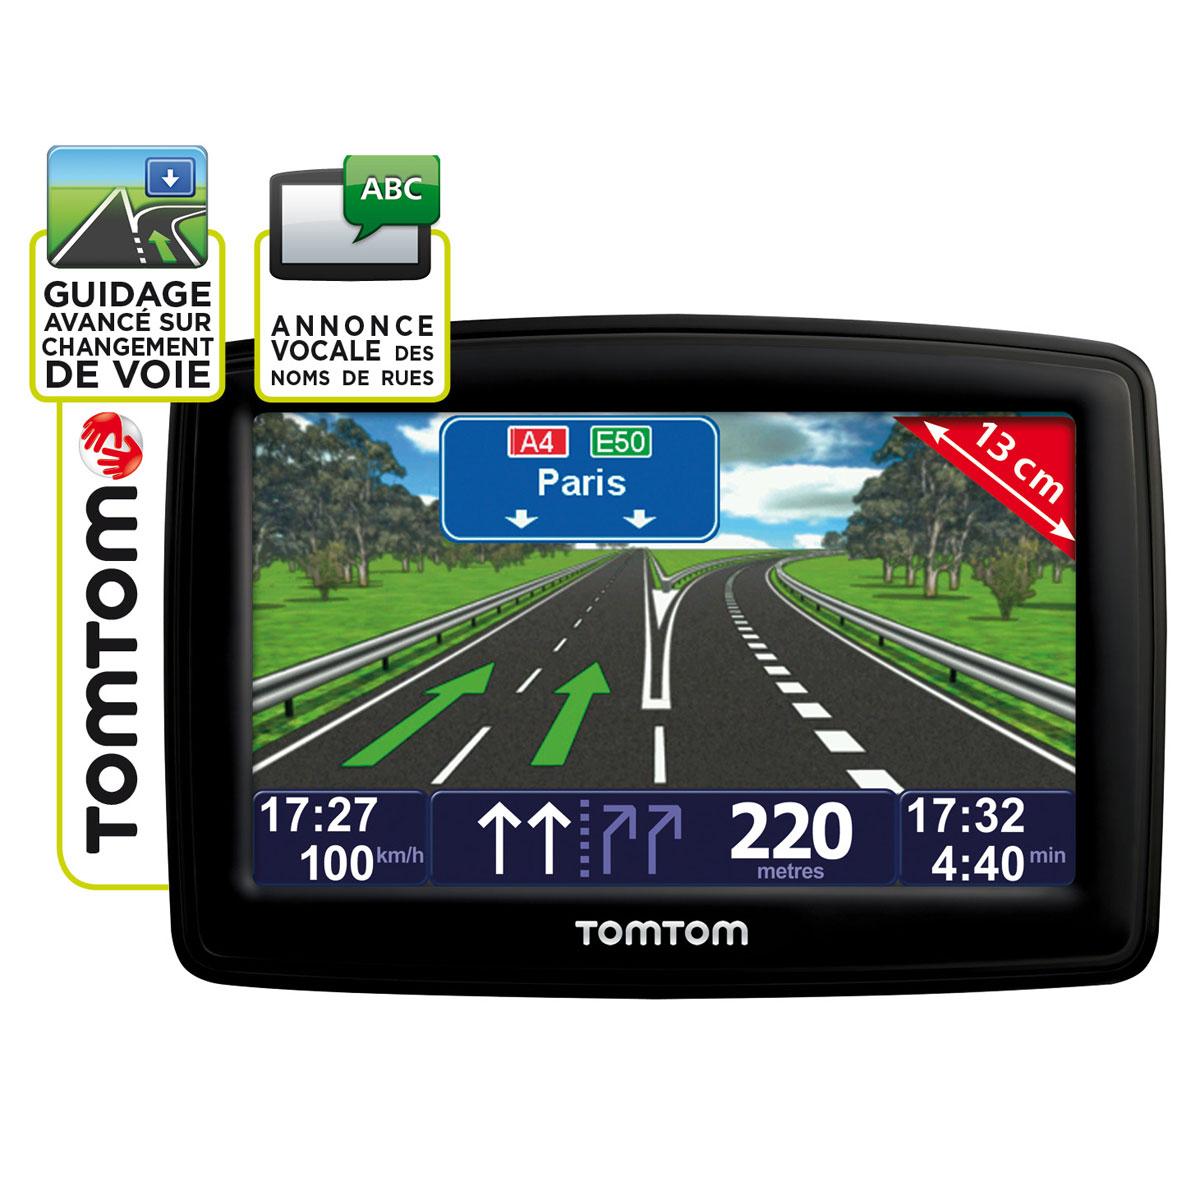 tomtom xxl europe classic series 23 pays gps tomtom sur. Black Bedroom Furniture Sets. Home Design Ideas